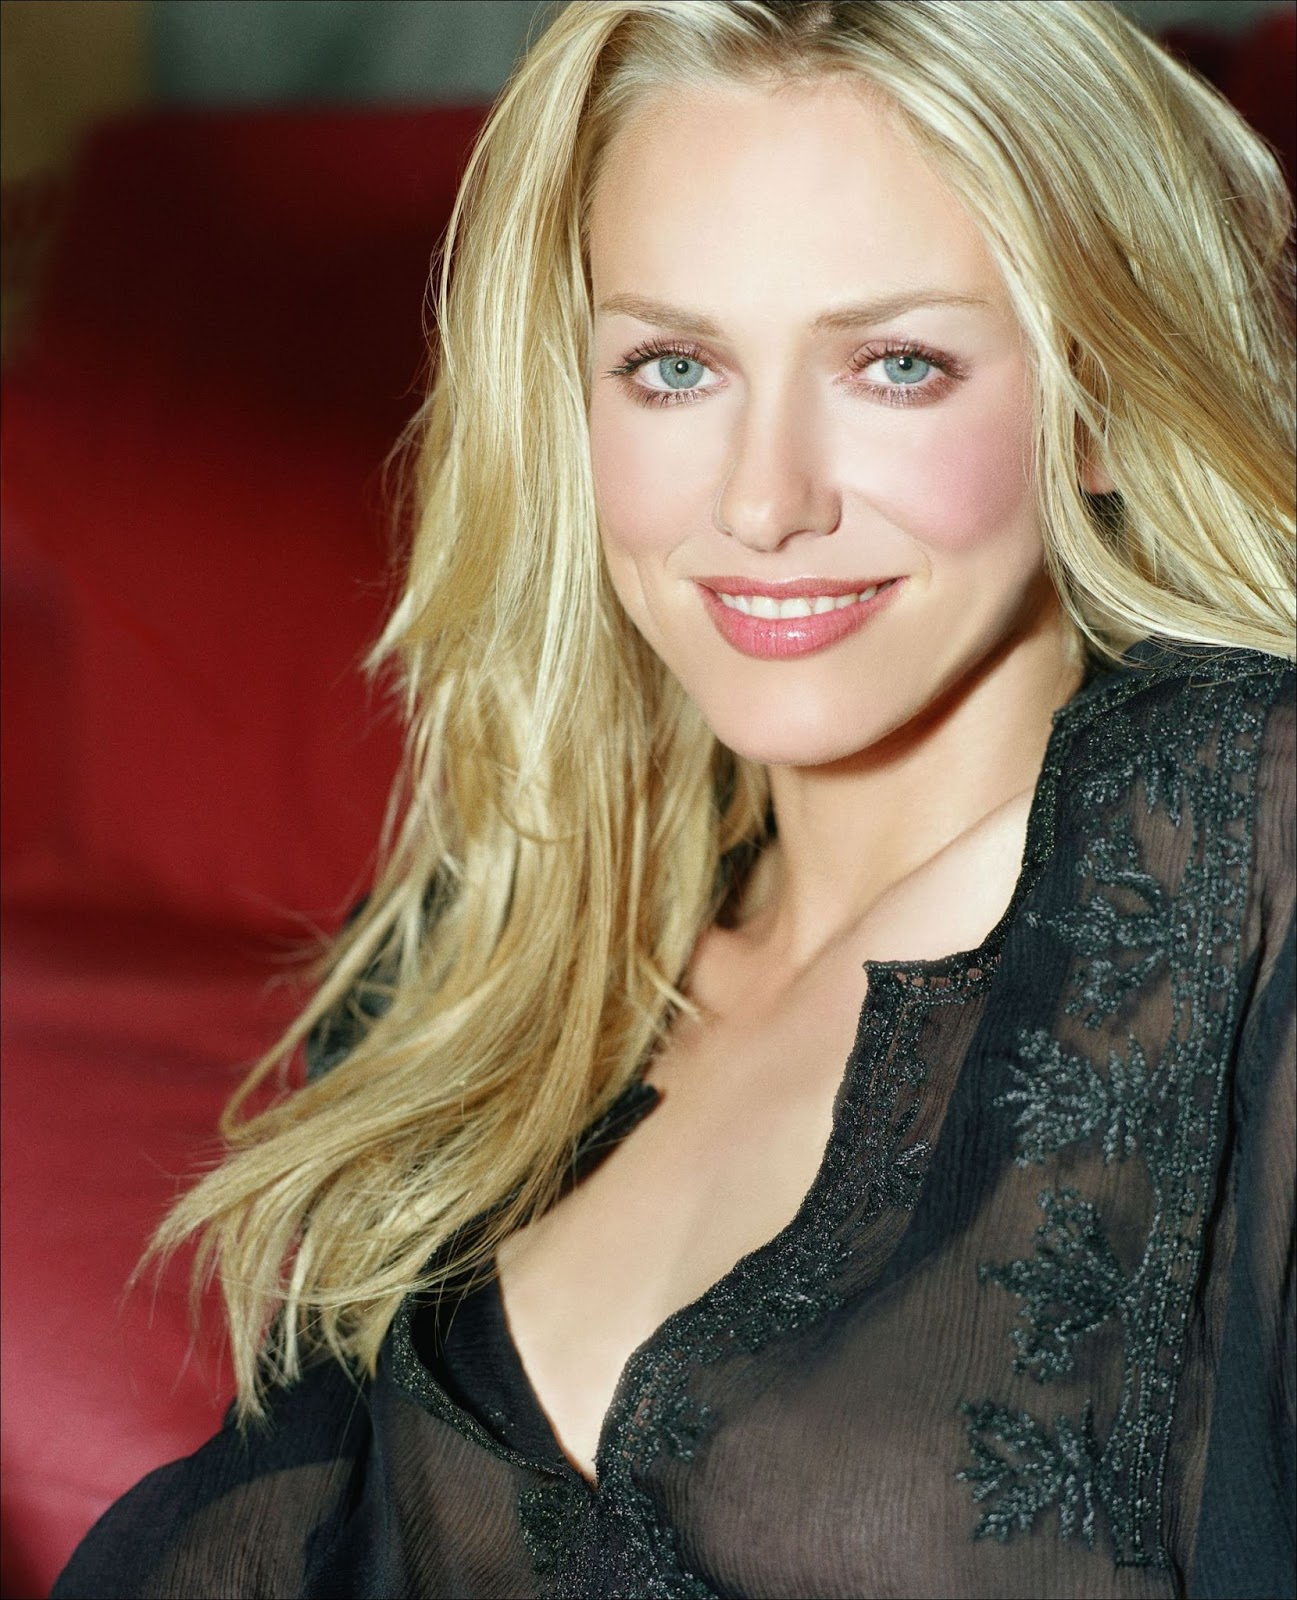 Naomi Watts makes out with co-star | InstaMag